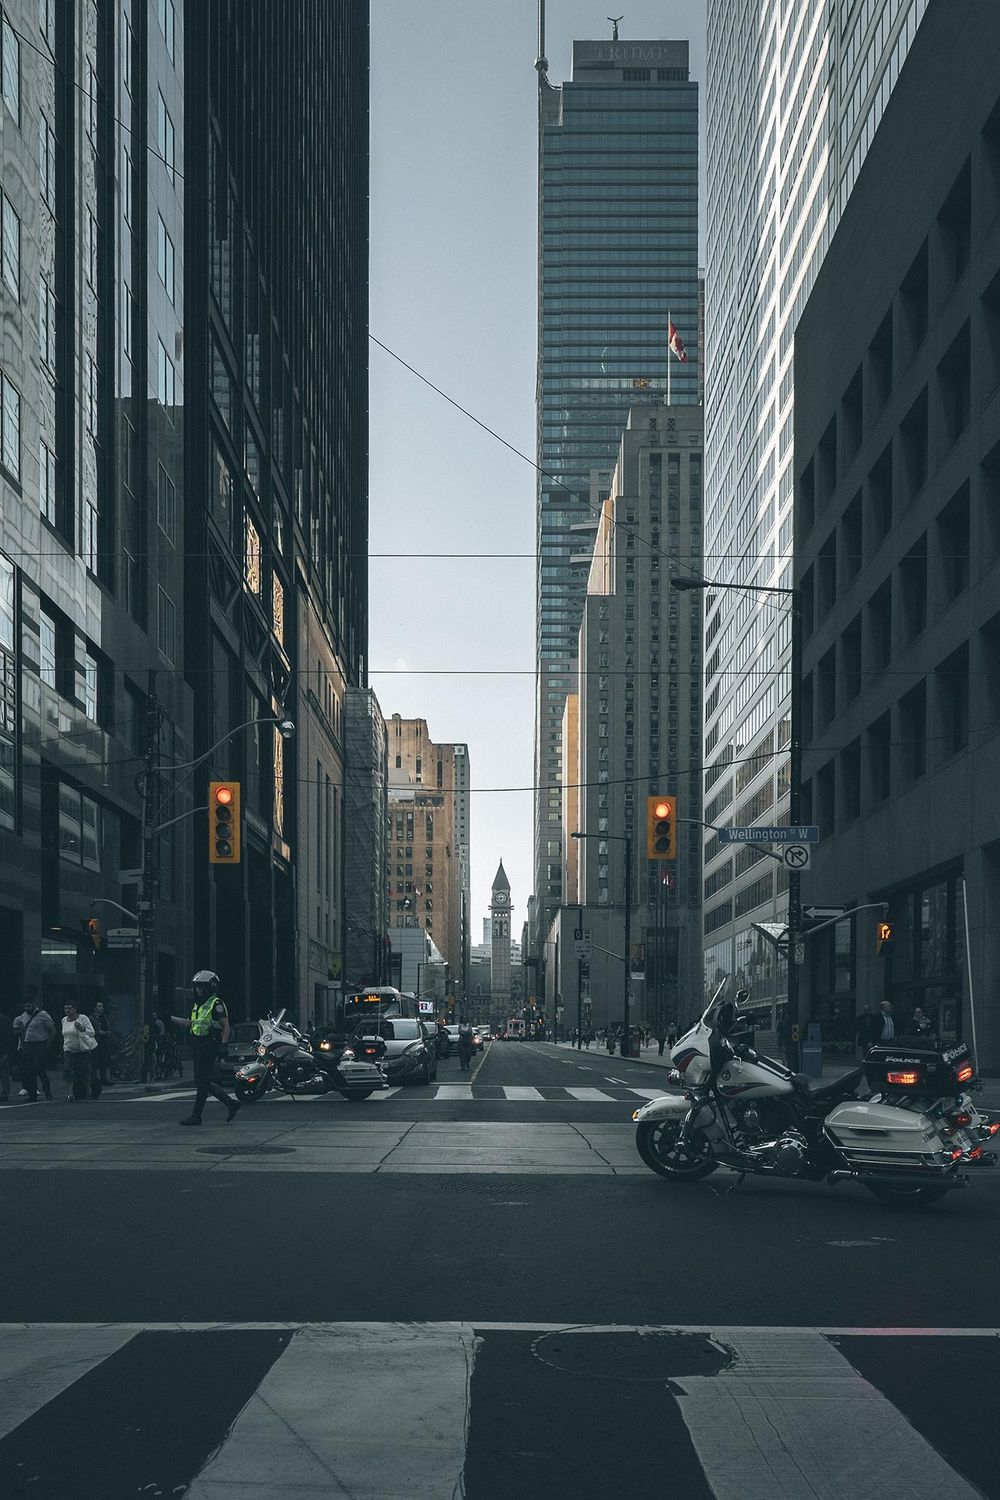 A Closer Look at Toronto - image 3 - student project